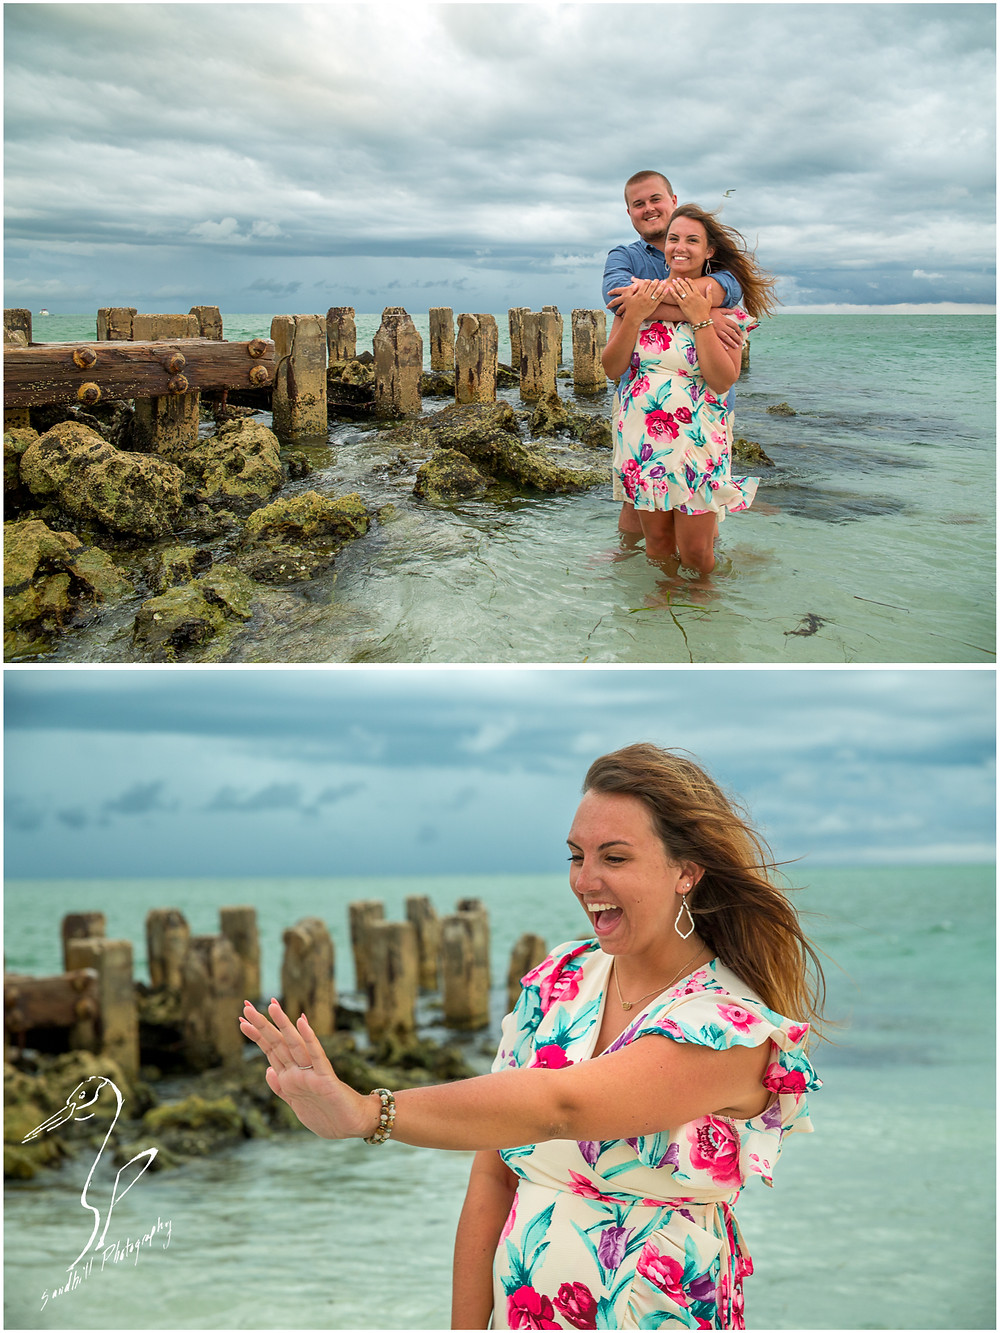 Bradenton Beach Engagement Photography, engaged couple standing in the water embracing in front of an old jetty